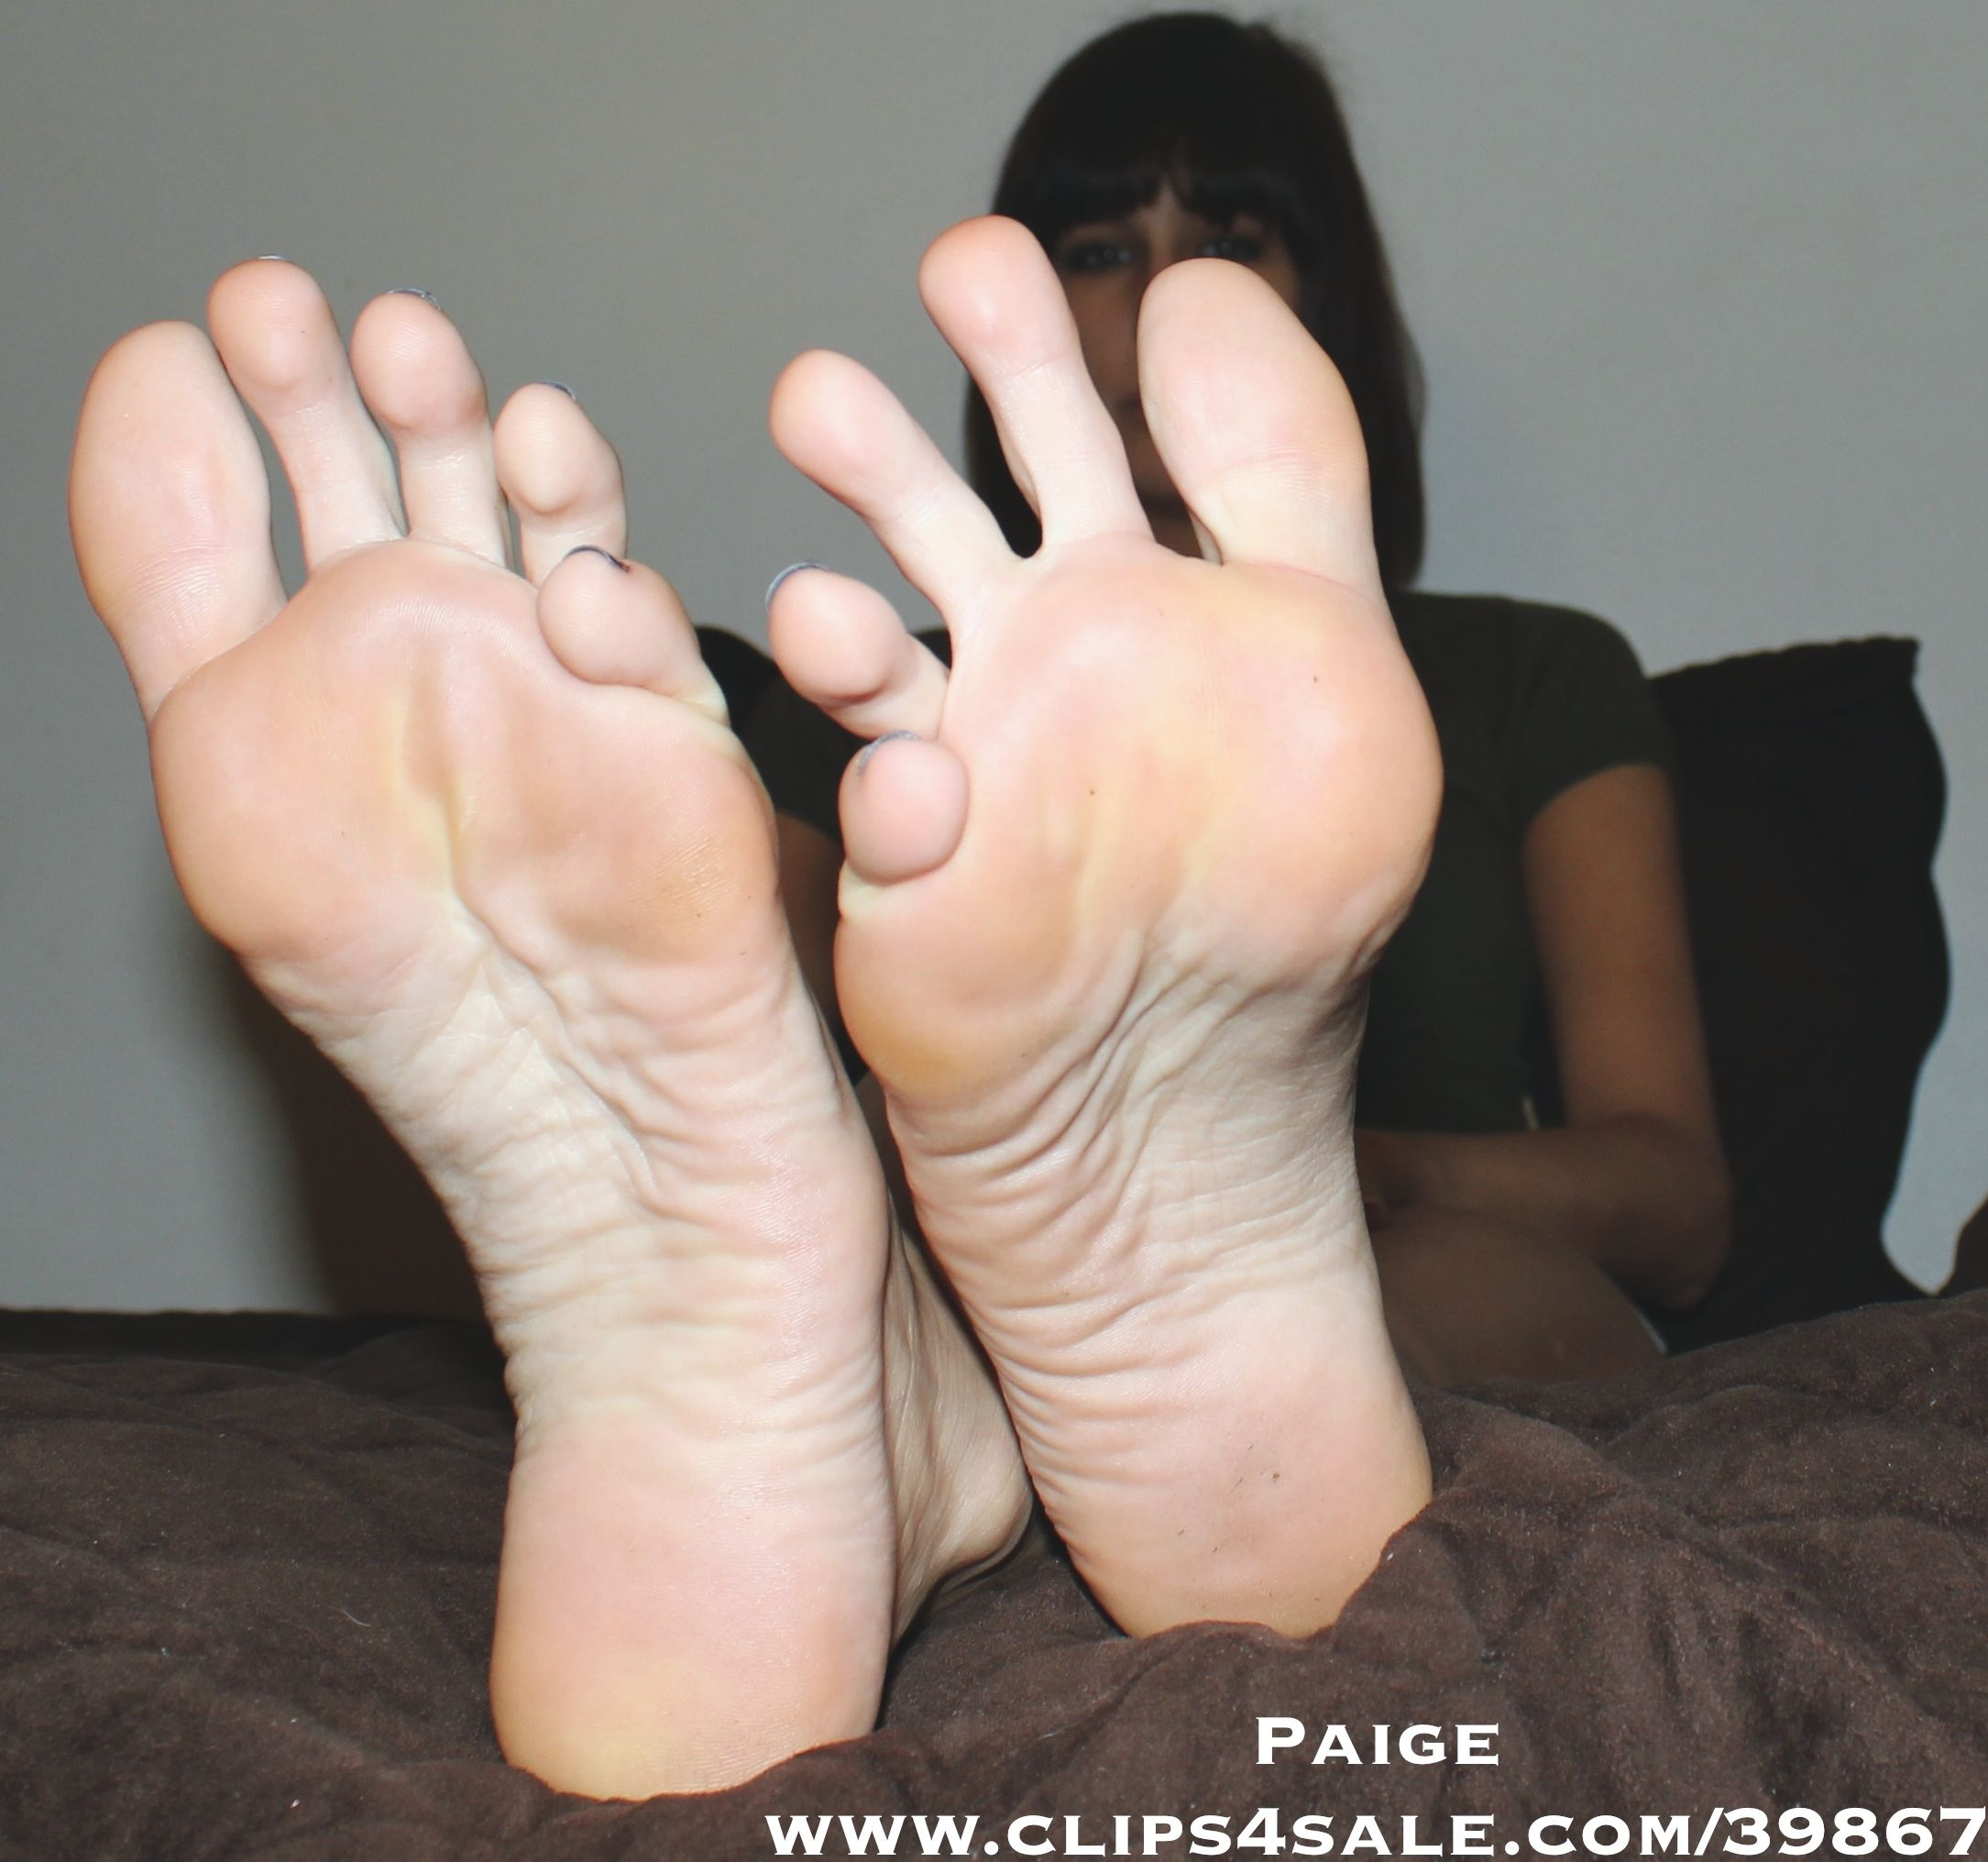 Pin On Female Feet And Toes-5573